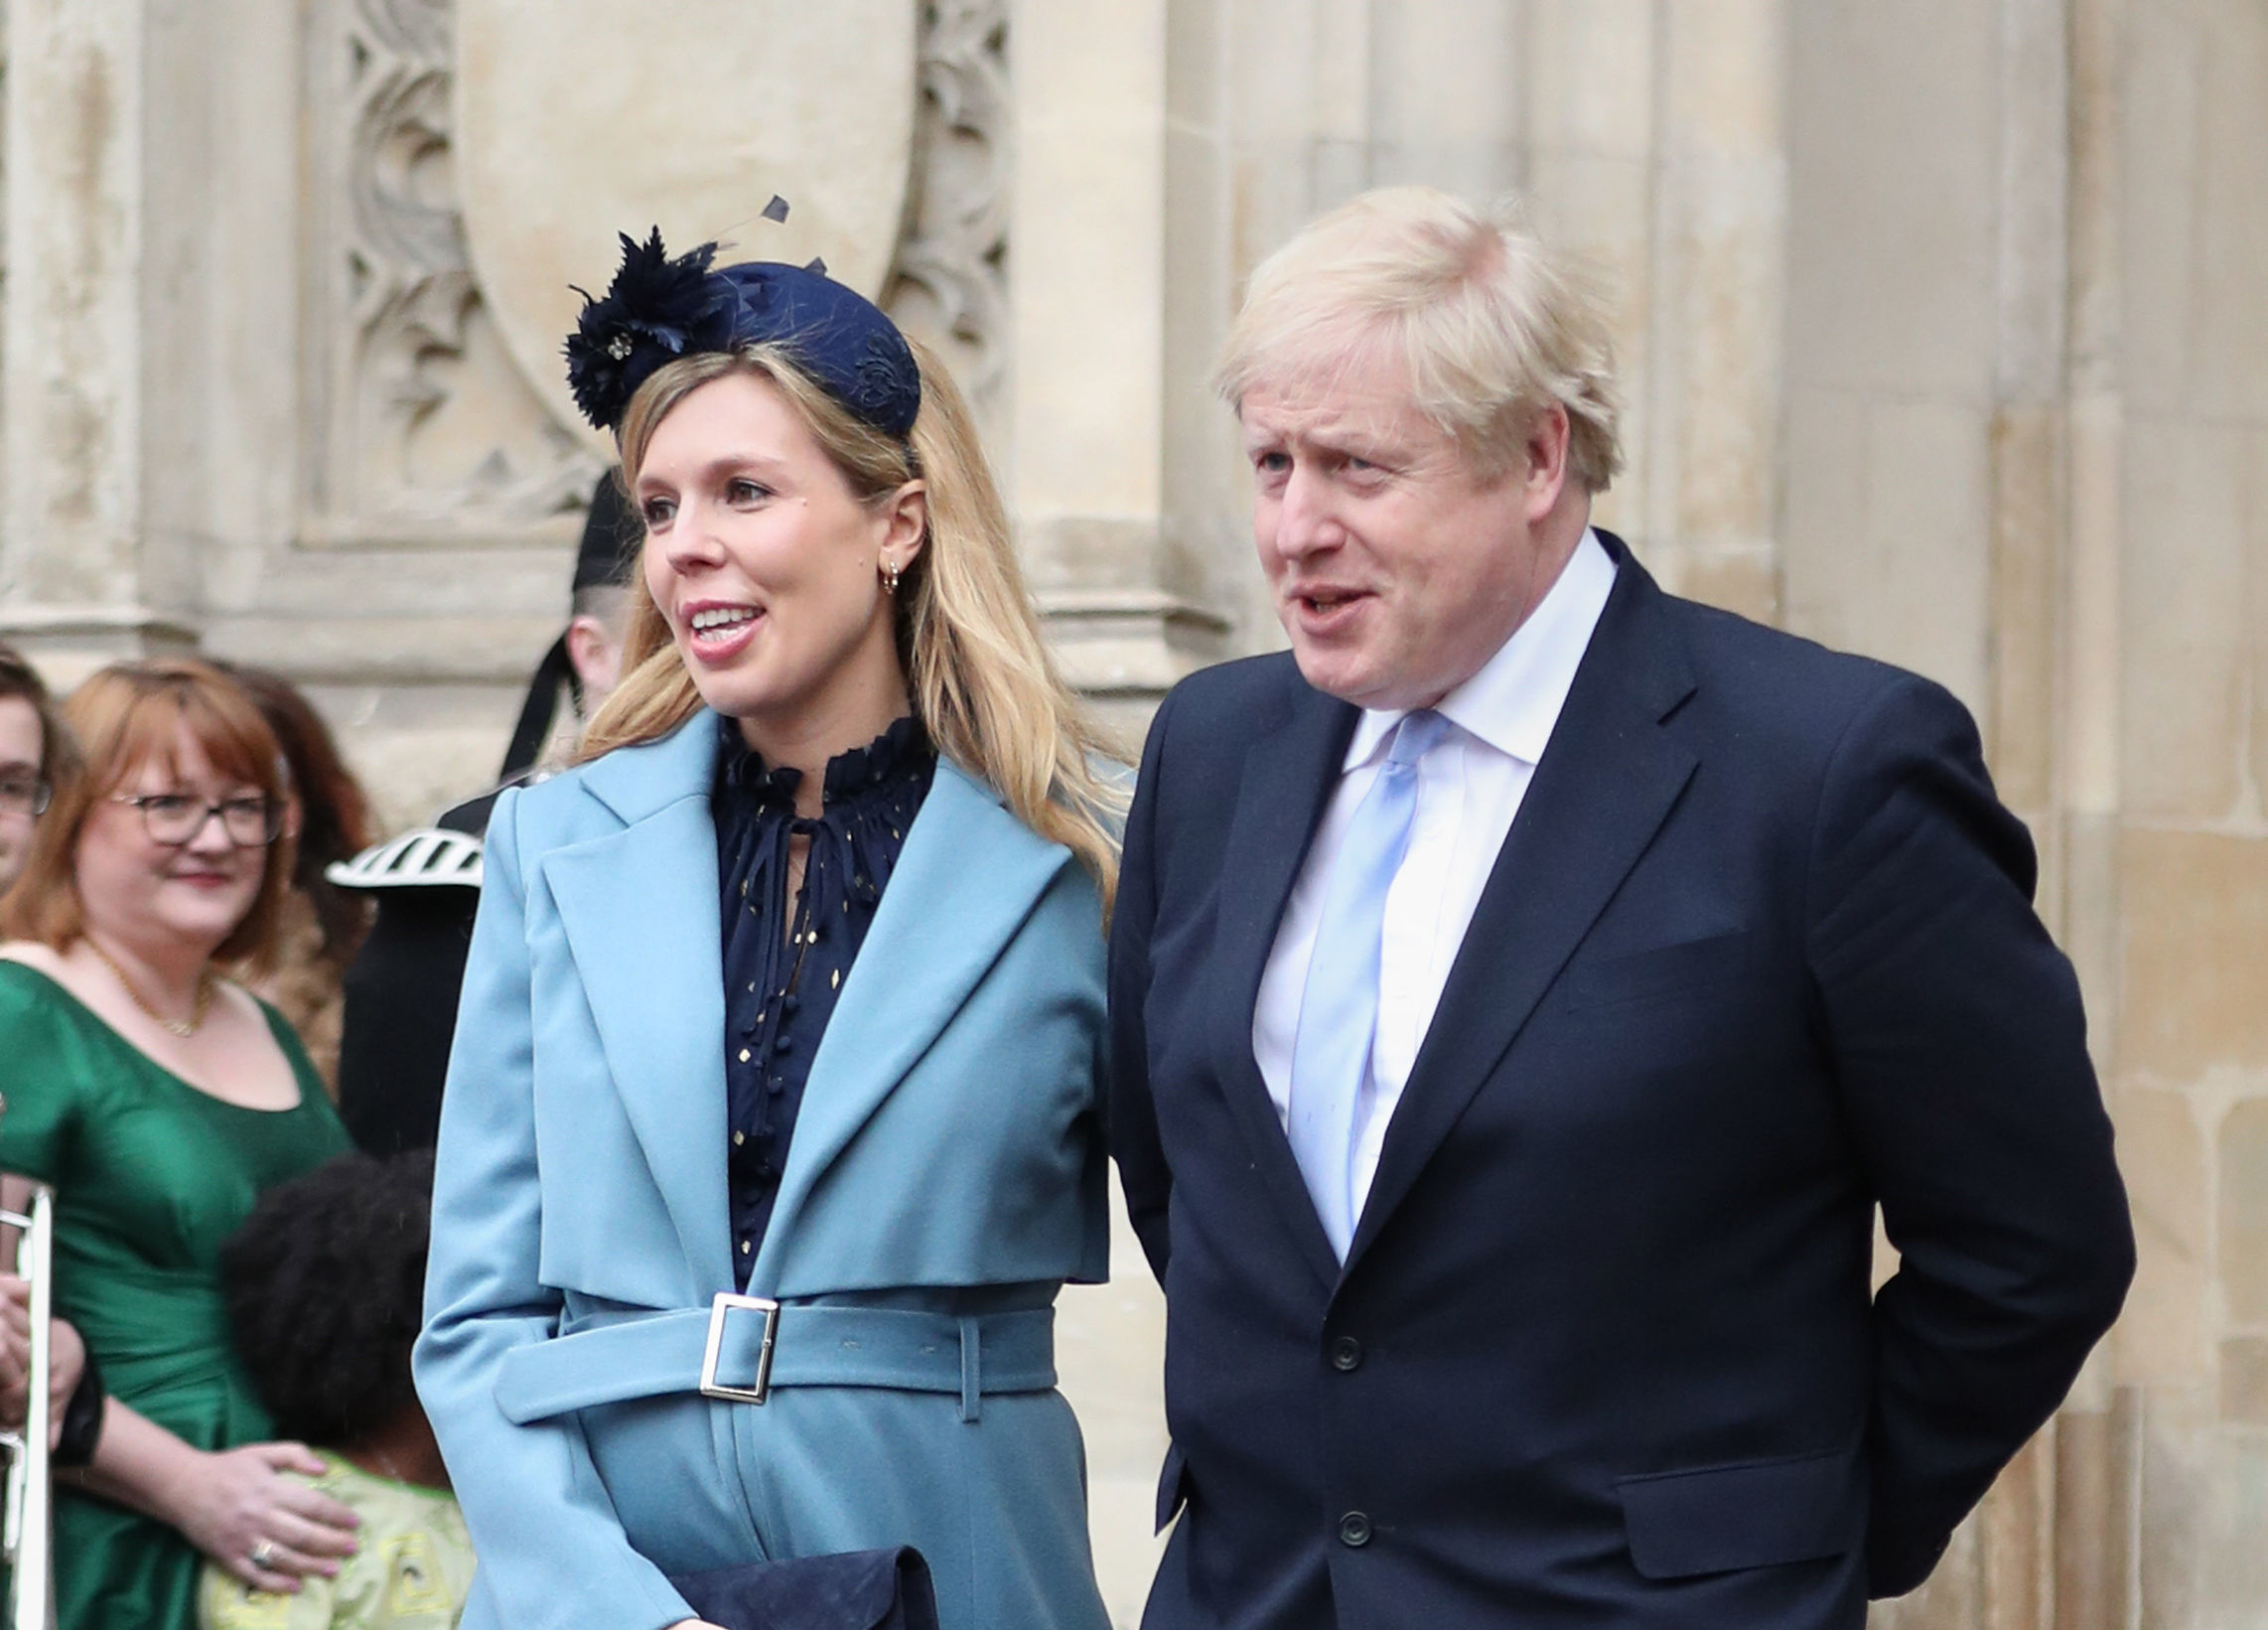 Boris Johnson and wife Carrie announce second pregnancy after 'heartbreaking' miscarriage